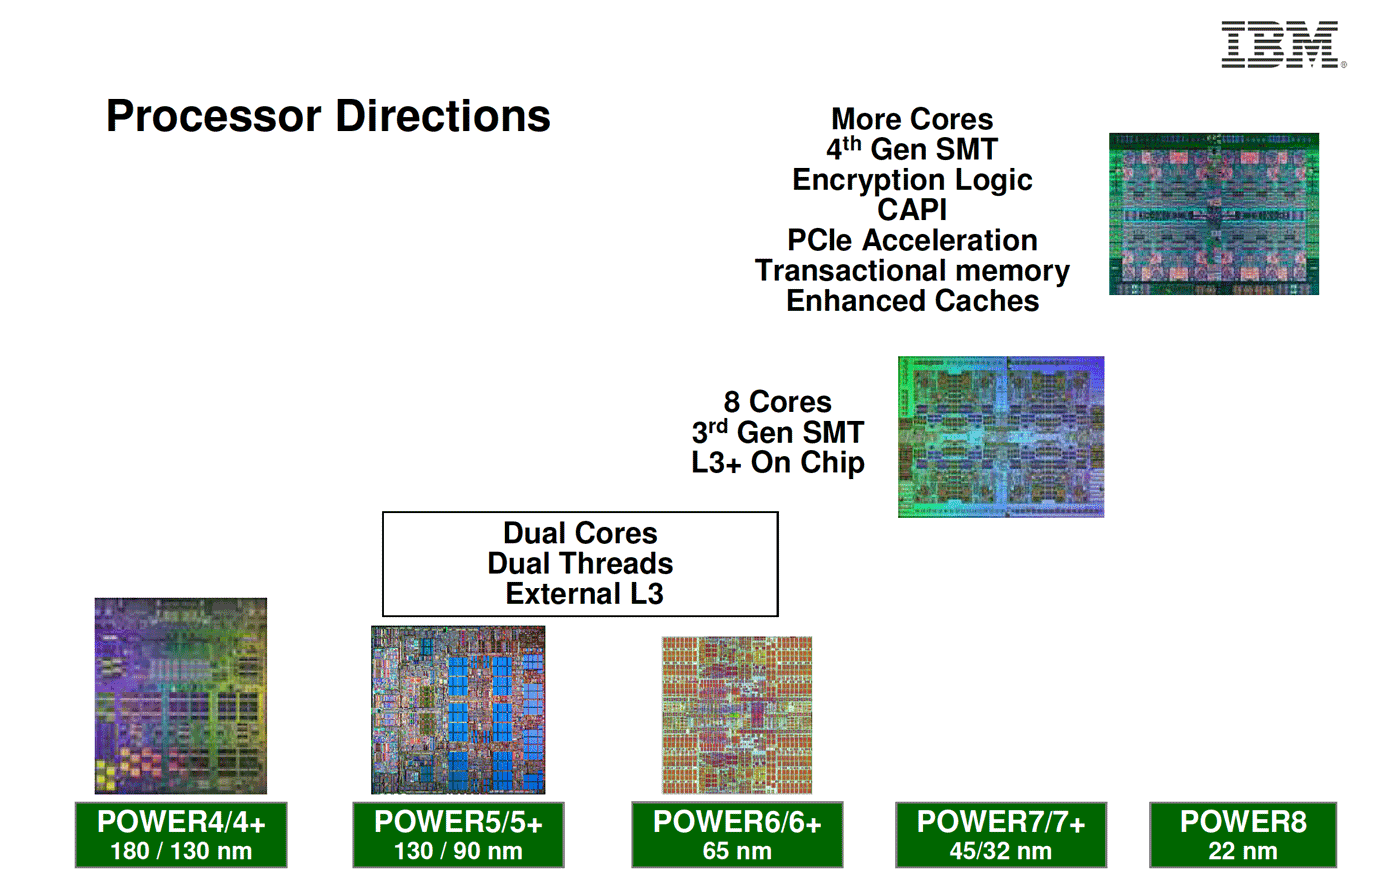 IBM's current Power8 processors are built on a 22nm process. Big Blue expects to use more advanced 14nm, 10nm, and 7nm processes later.